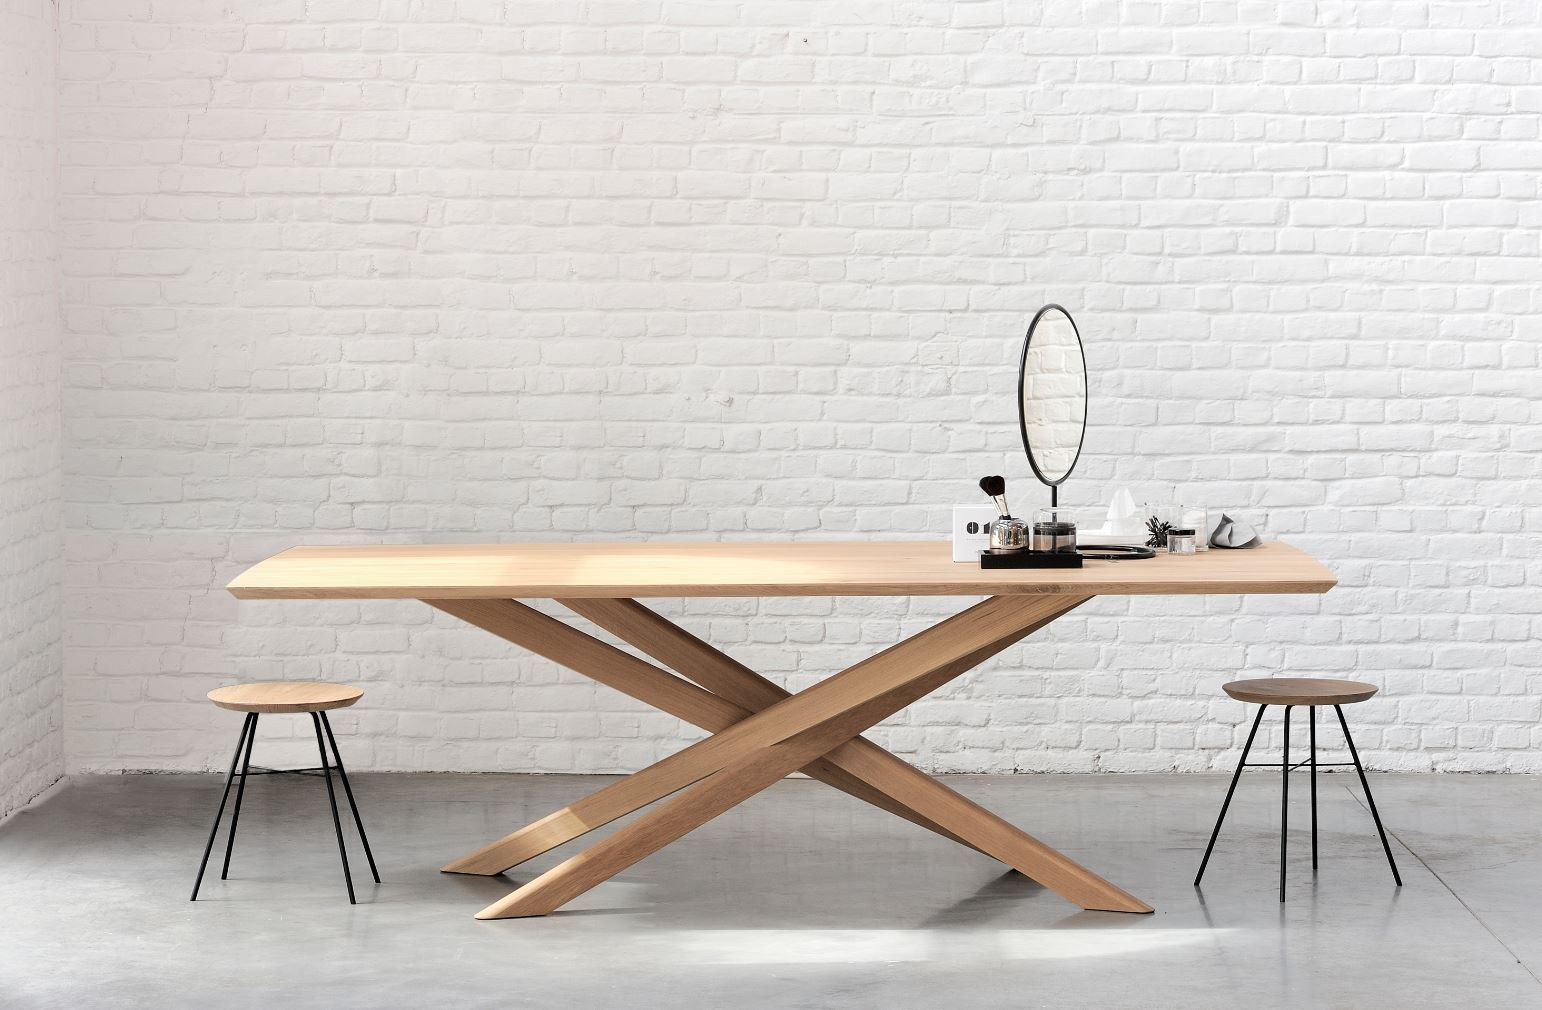 Oak mikado table by ethnicraft - Table massif rallonge ...